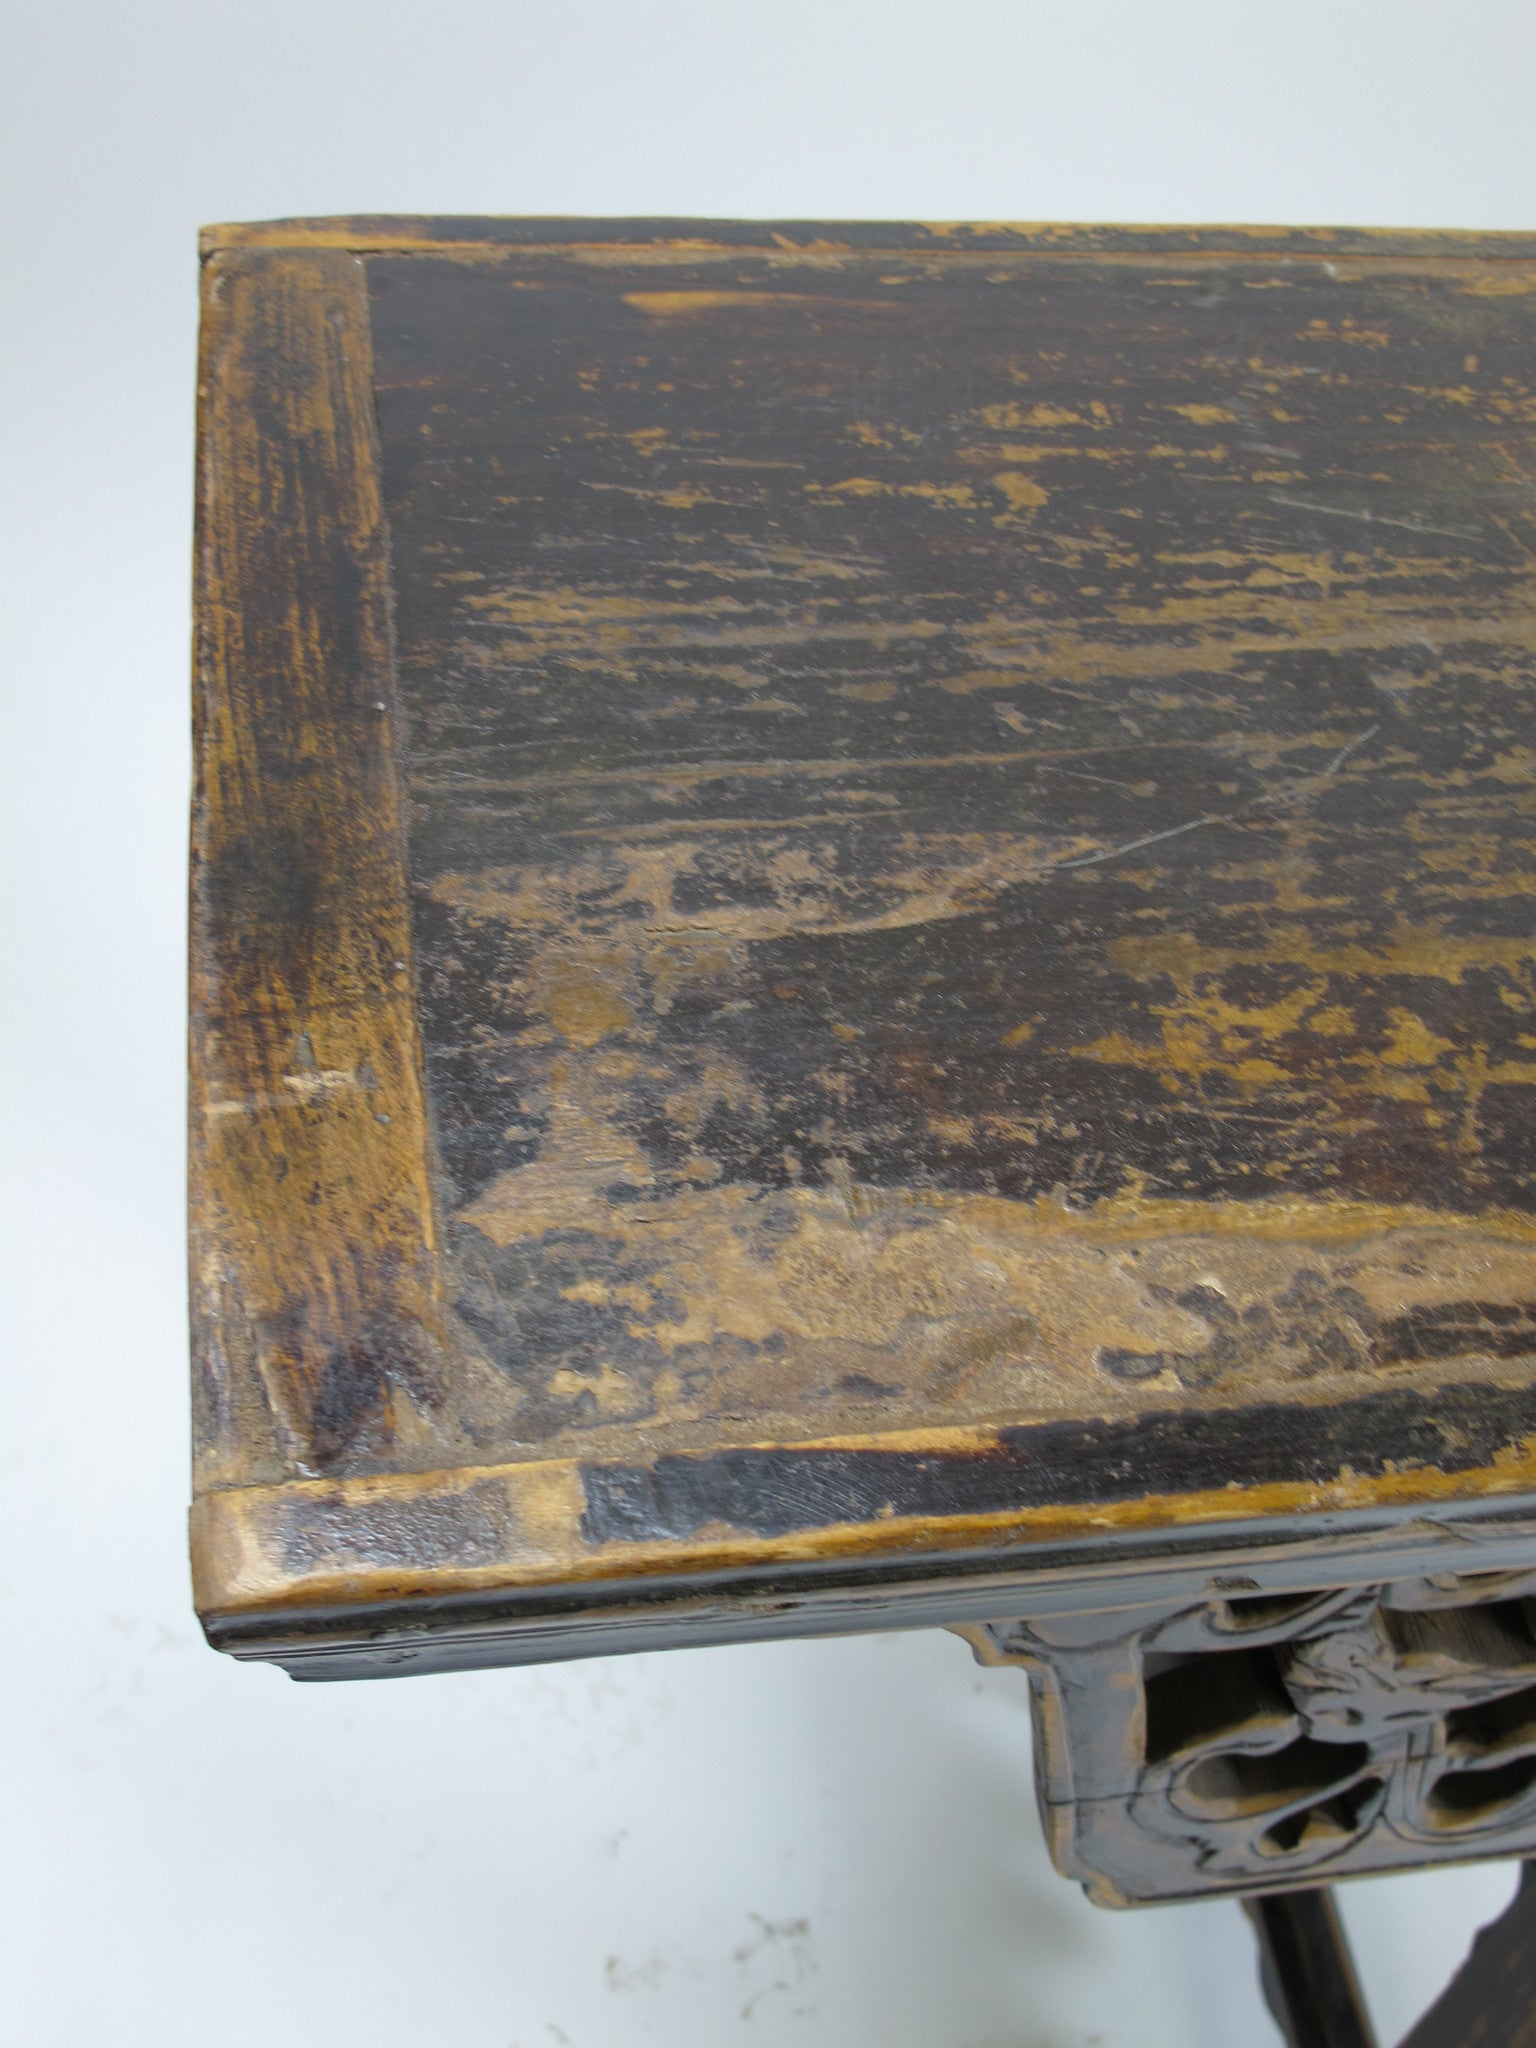 Antique chinese console table dyag east antique chinese console table dyag east geotapseo Gallery